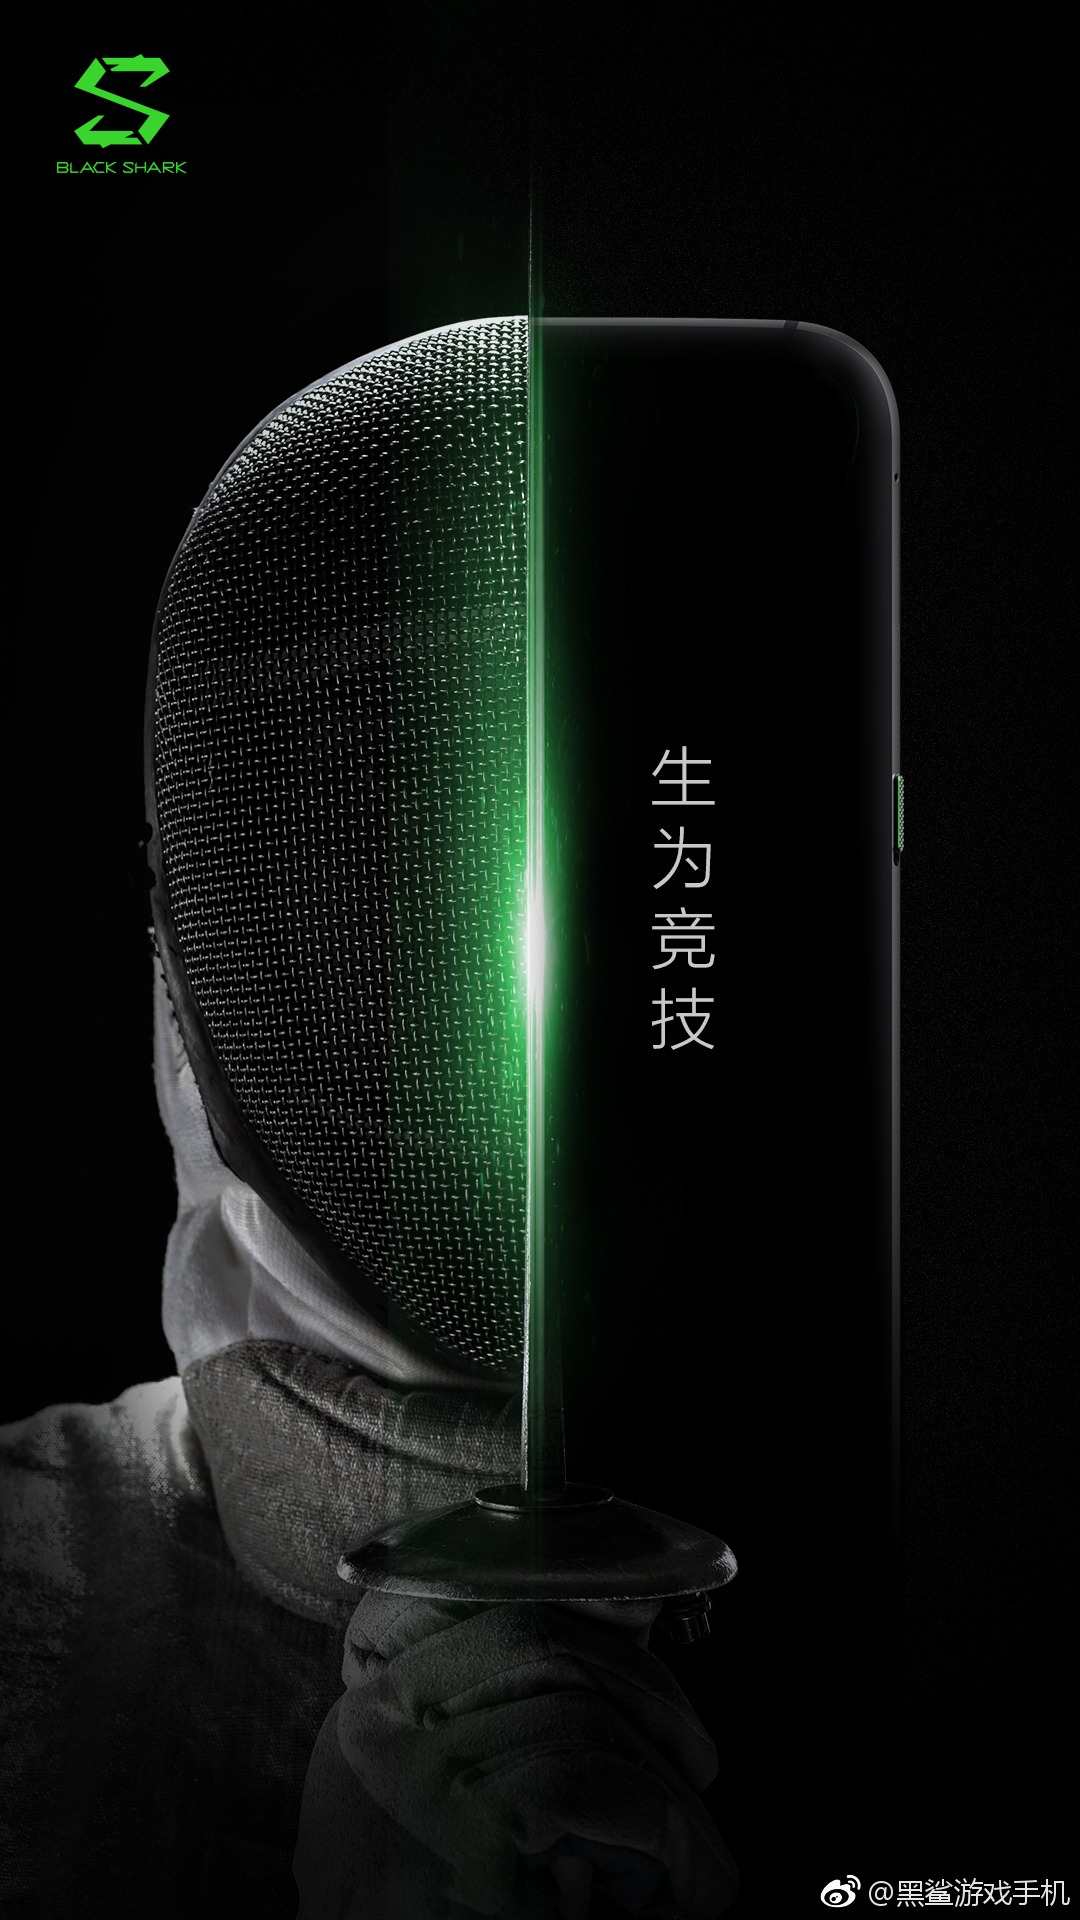 Black Shark gaming smartphone gets teased by the company, again 1